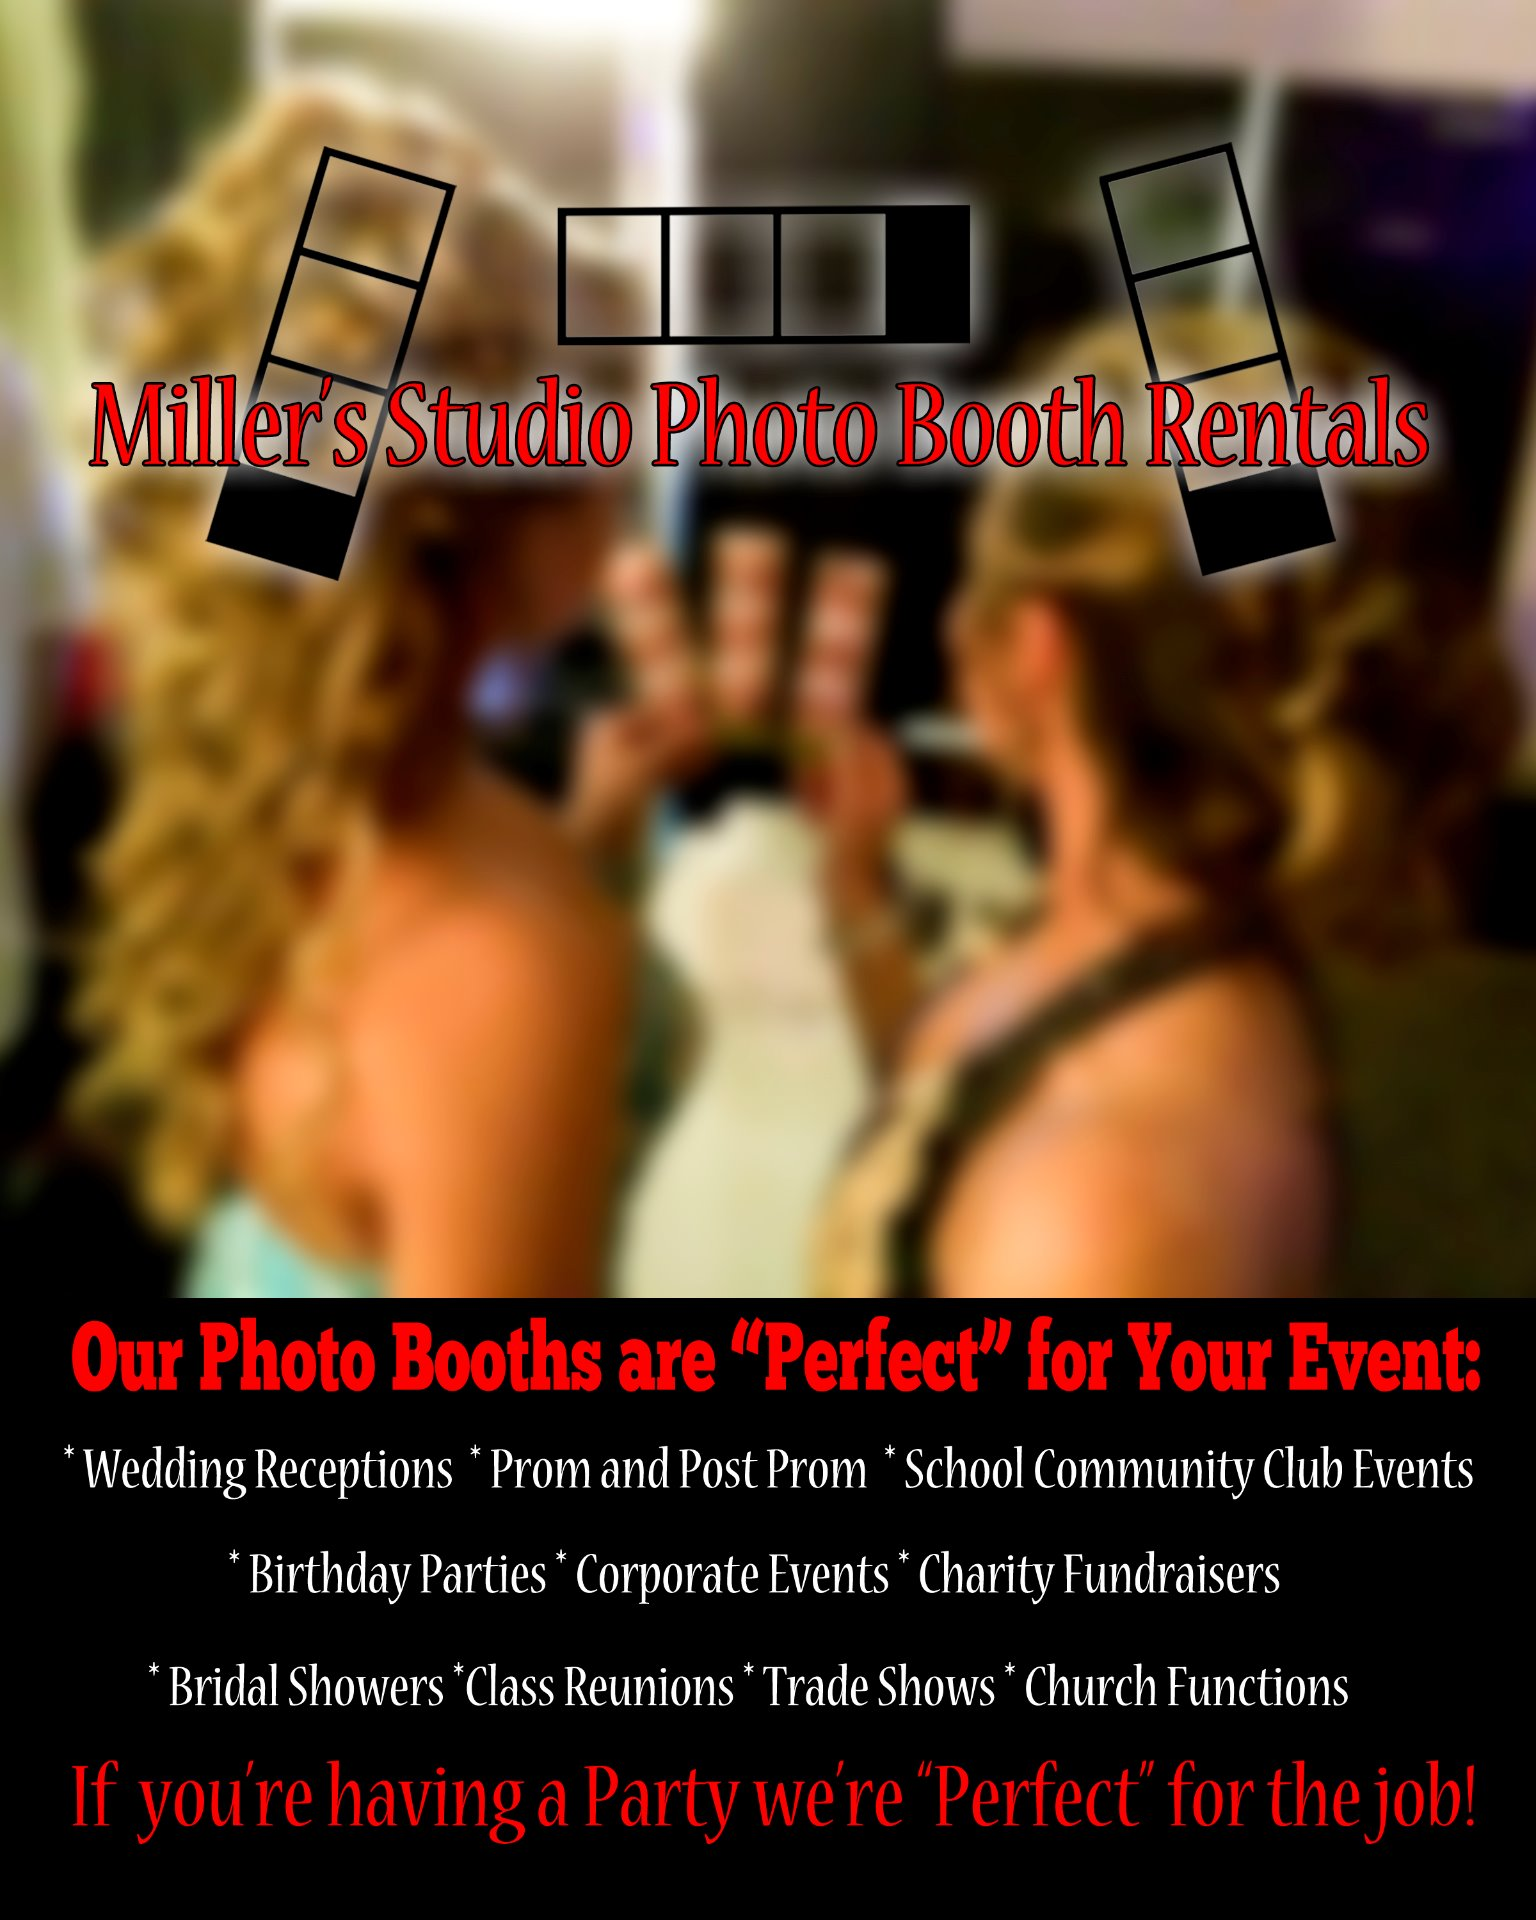 Miller's Photo Booth Rentals